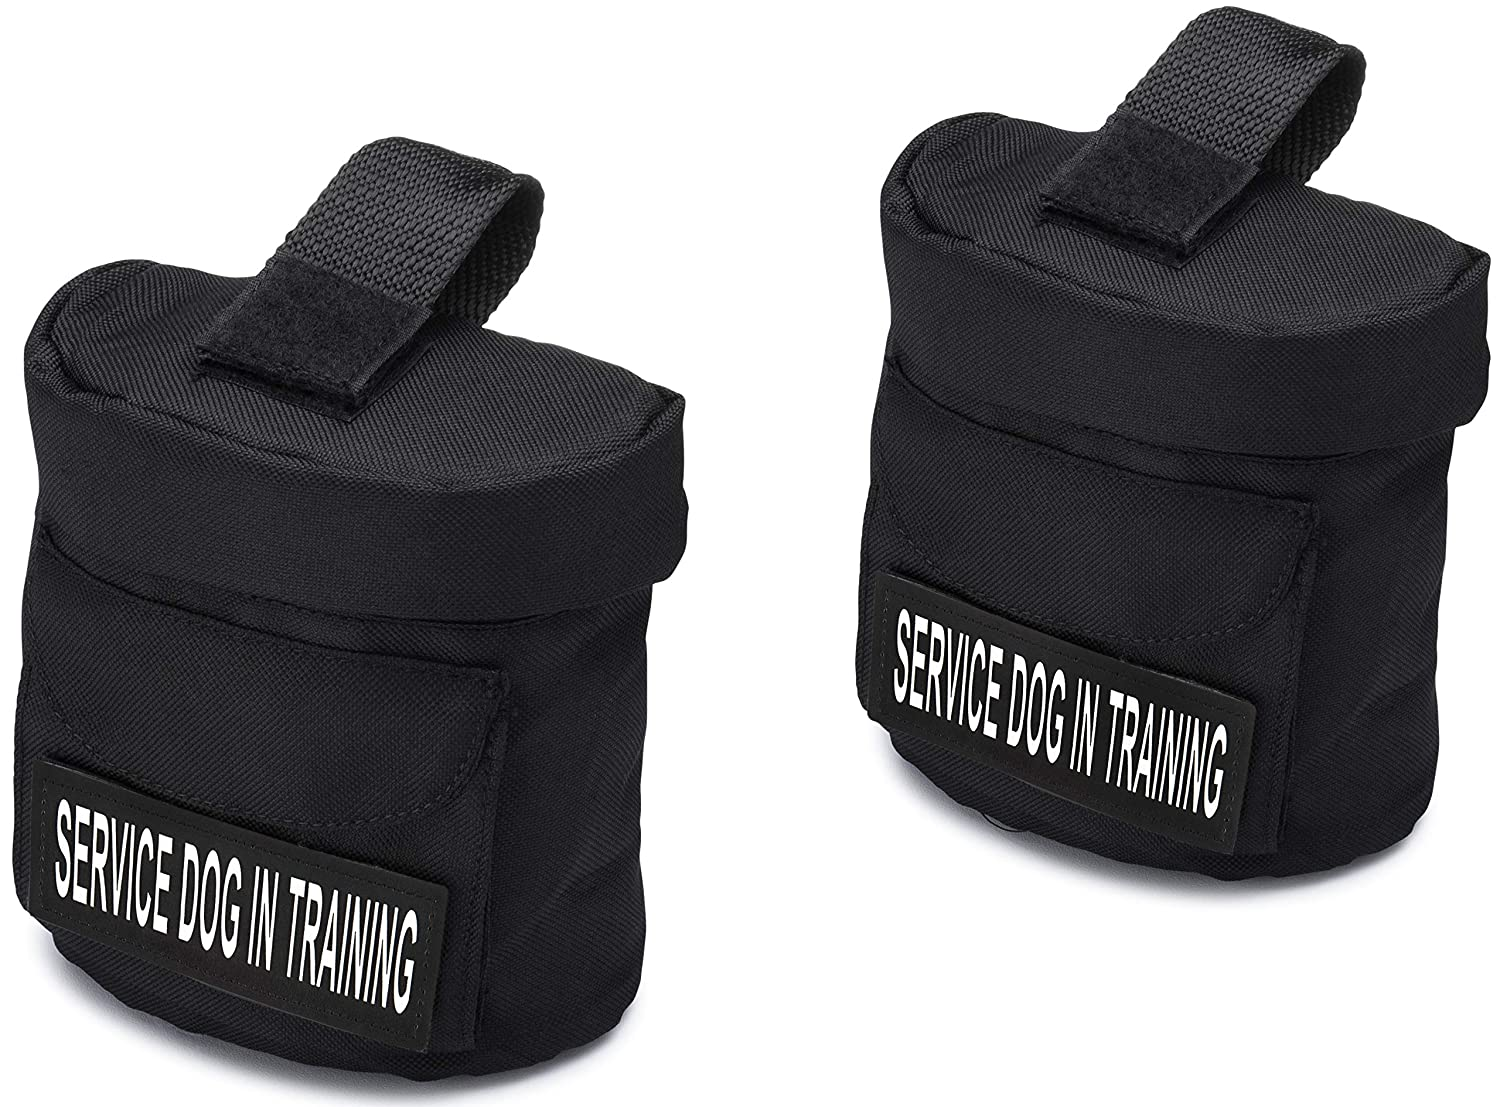 Harness Backpack for Industrial Puppy Harness with Velcro Patches (SERVICE DOG IN TRAINING)